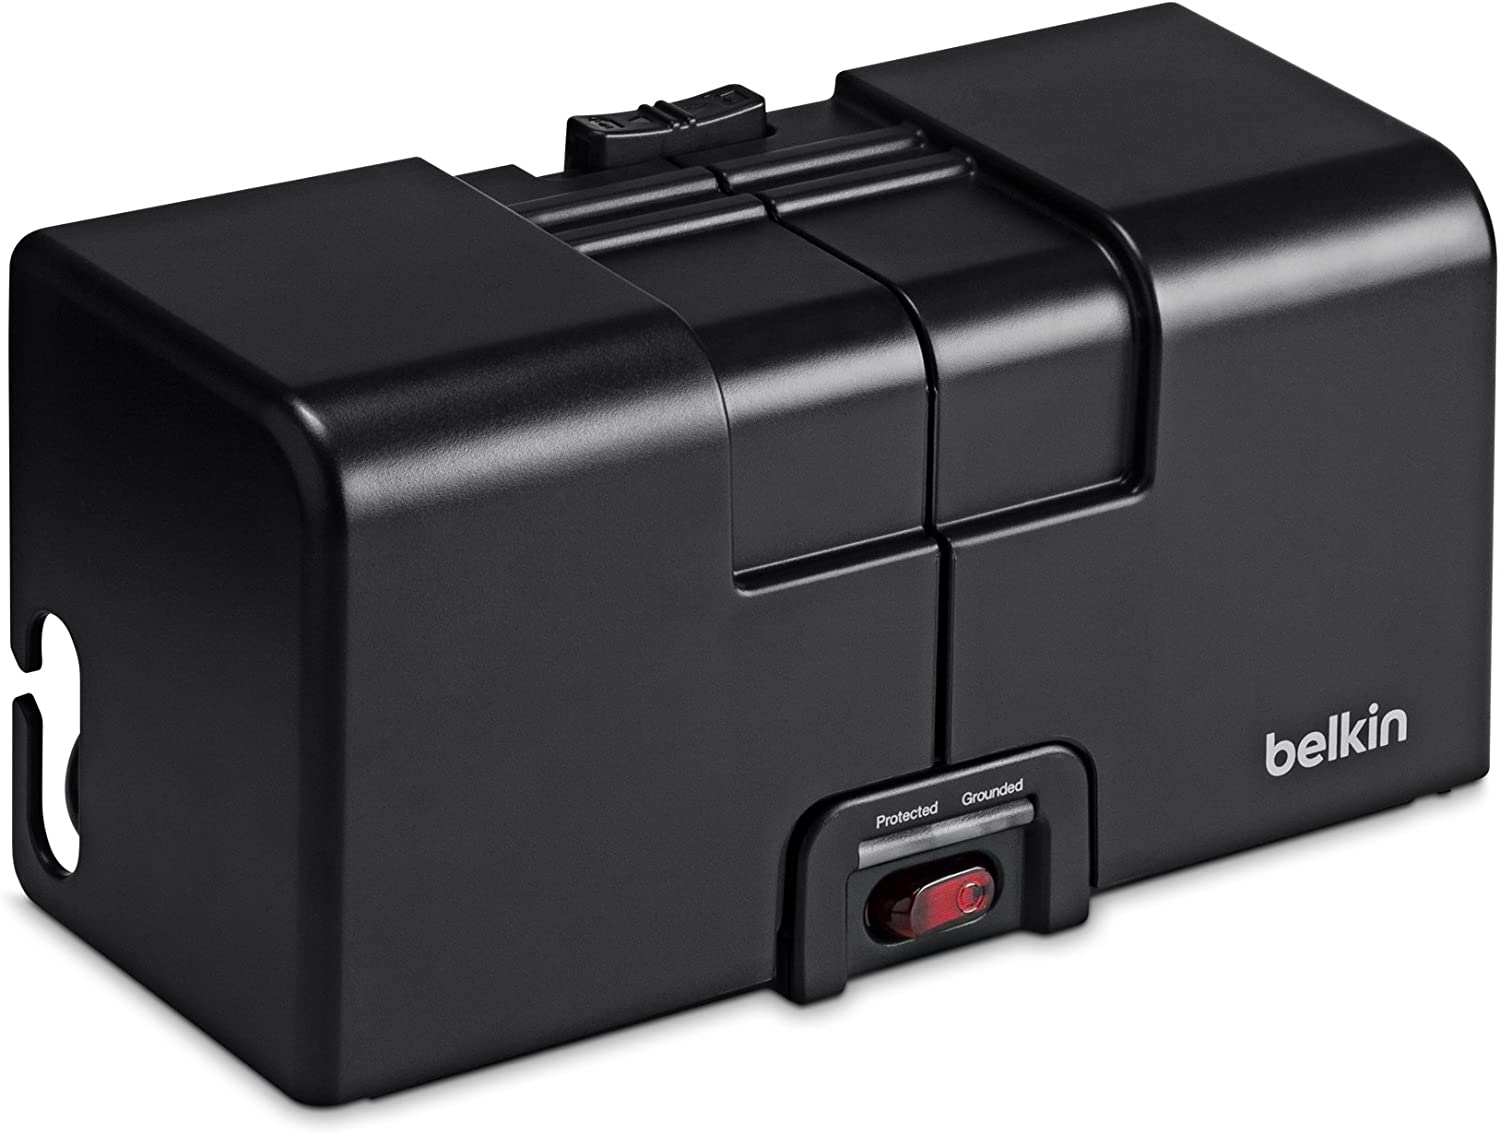 Belkin 8-Outlet Surge Protector with Power Cord Organizer, Designed for Office and Conference Room